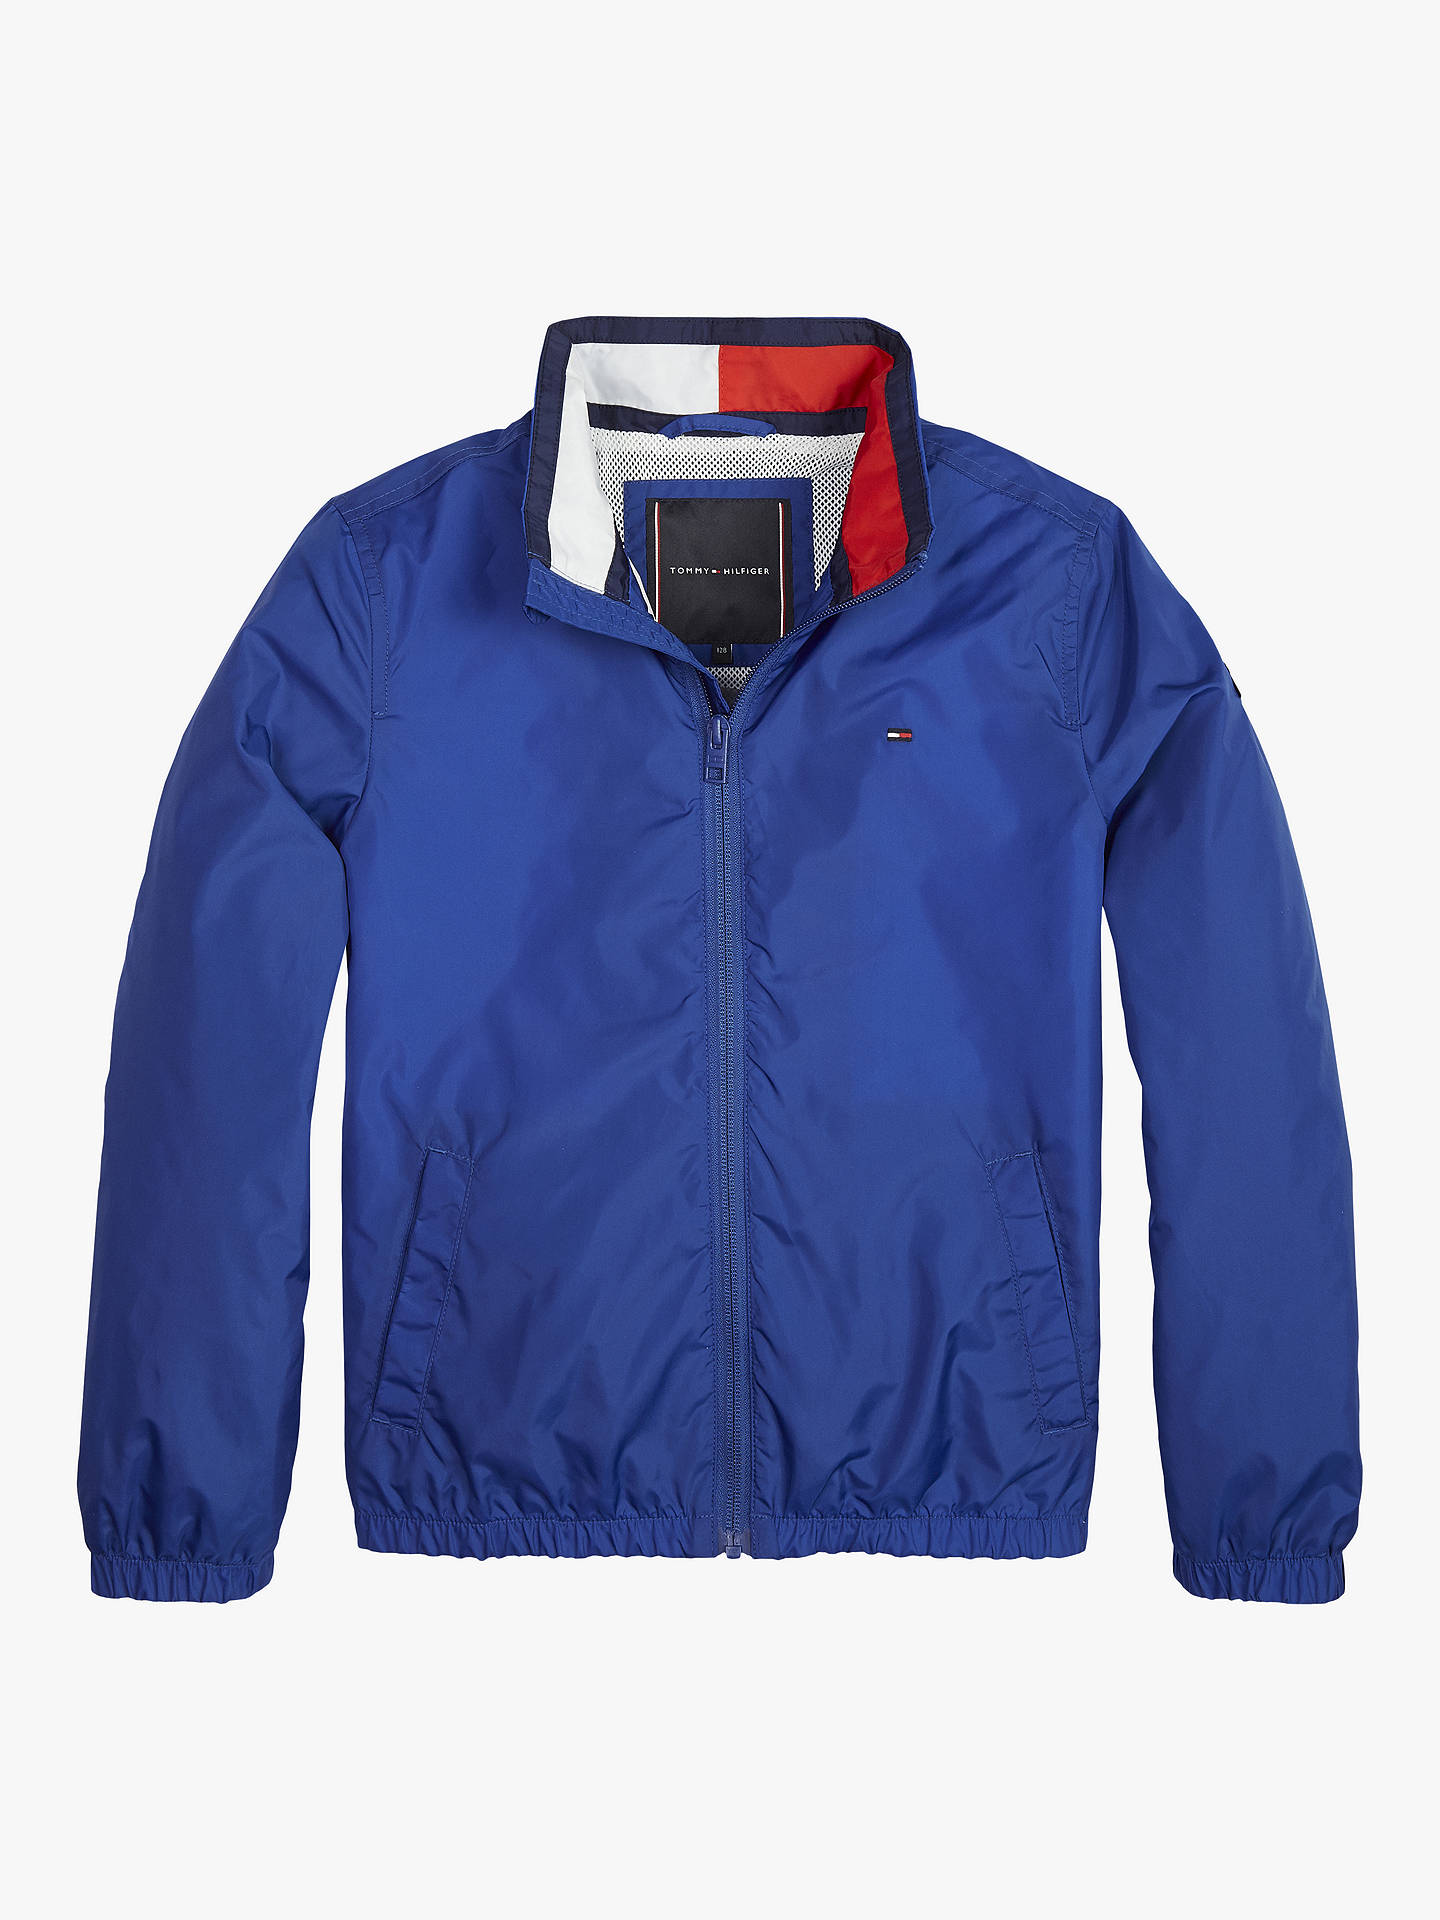 4e09f0fc7 Buy Tommy Hilfiger Boys' Essential Flag Jacket, Blue, 6 years Online at  johnlewis ...